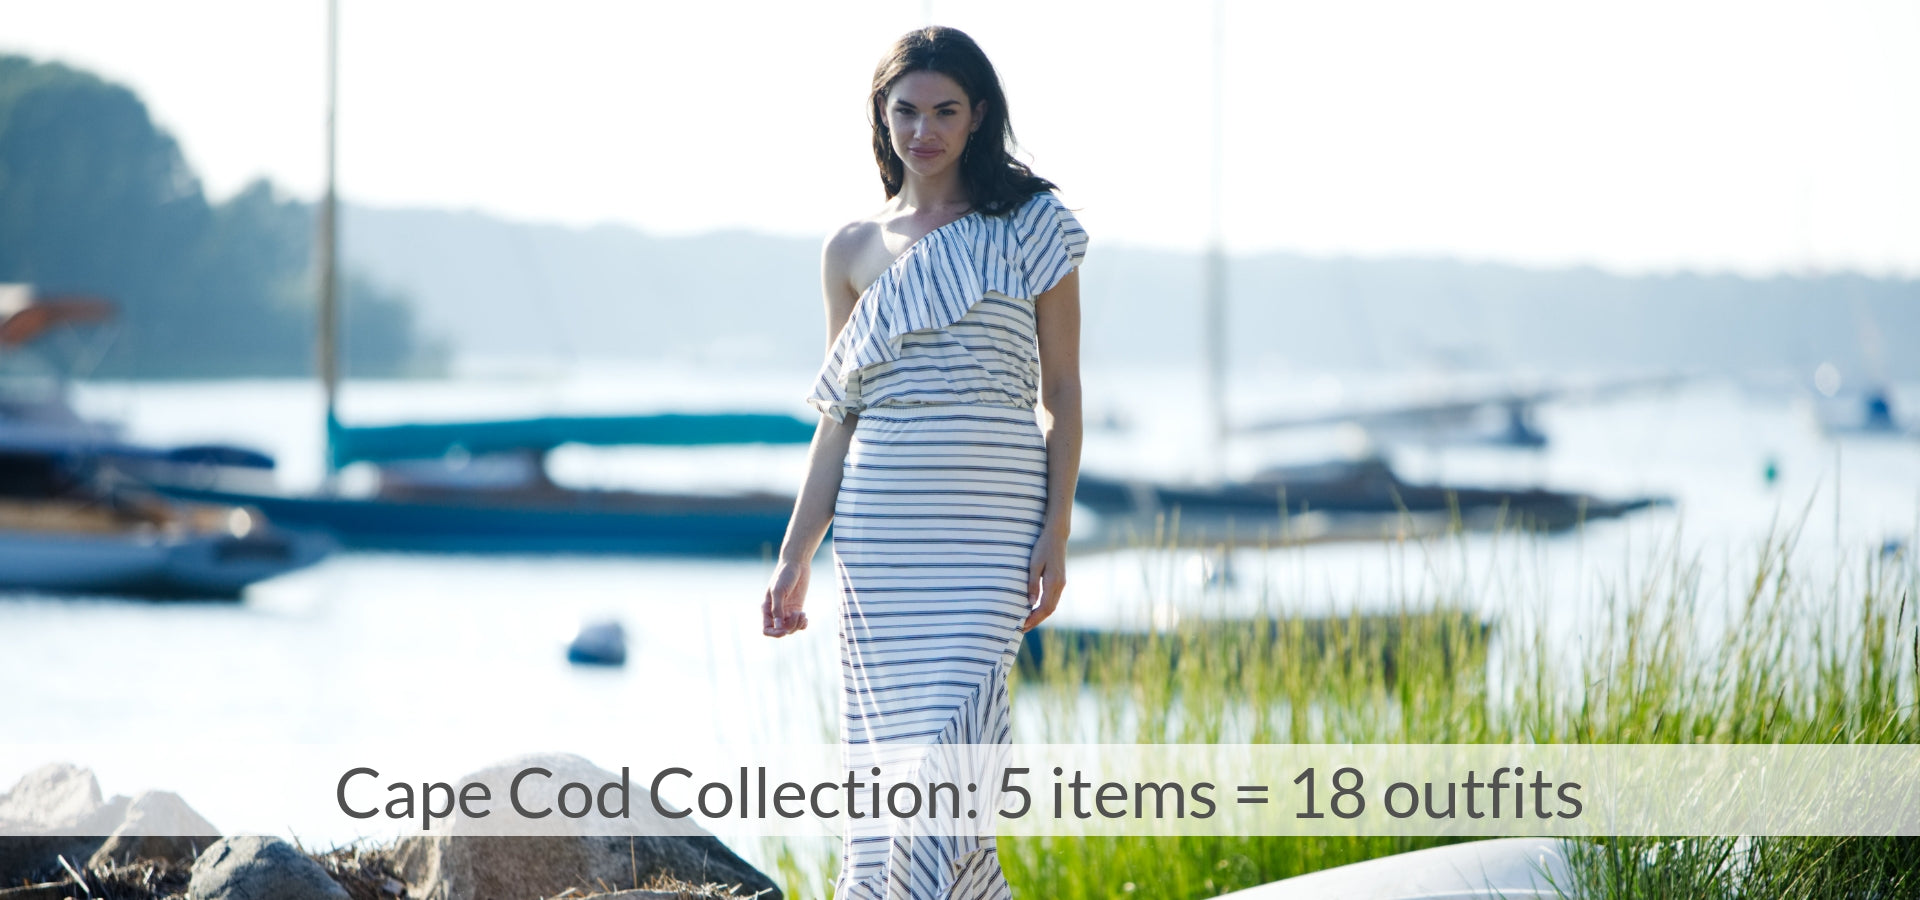 Cape Cod Collection: 5 items = 18 outfits